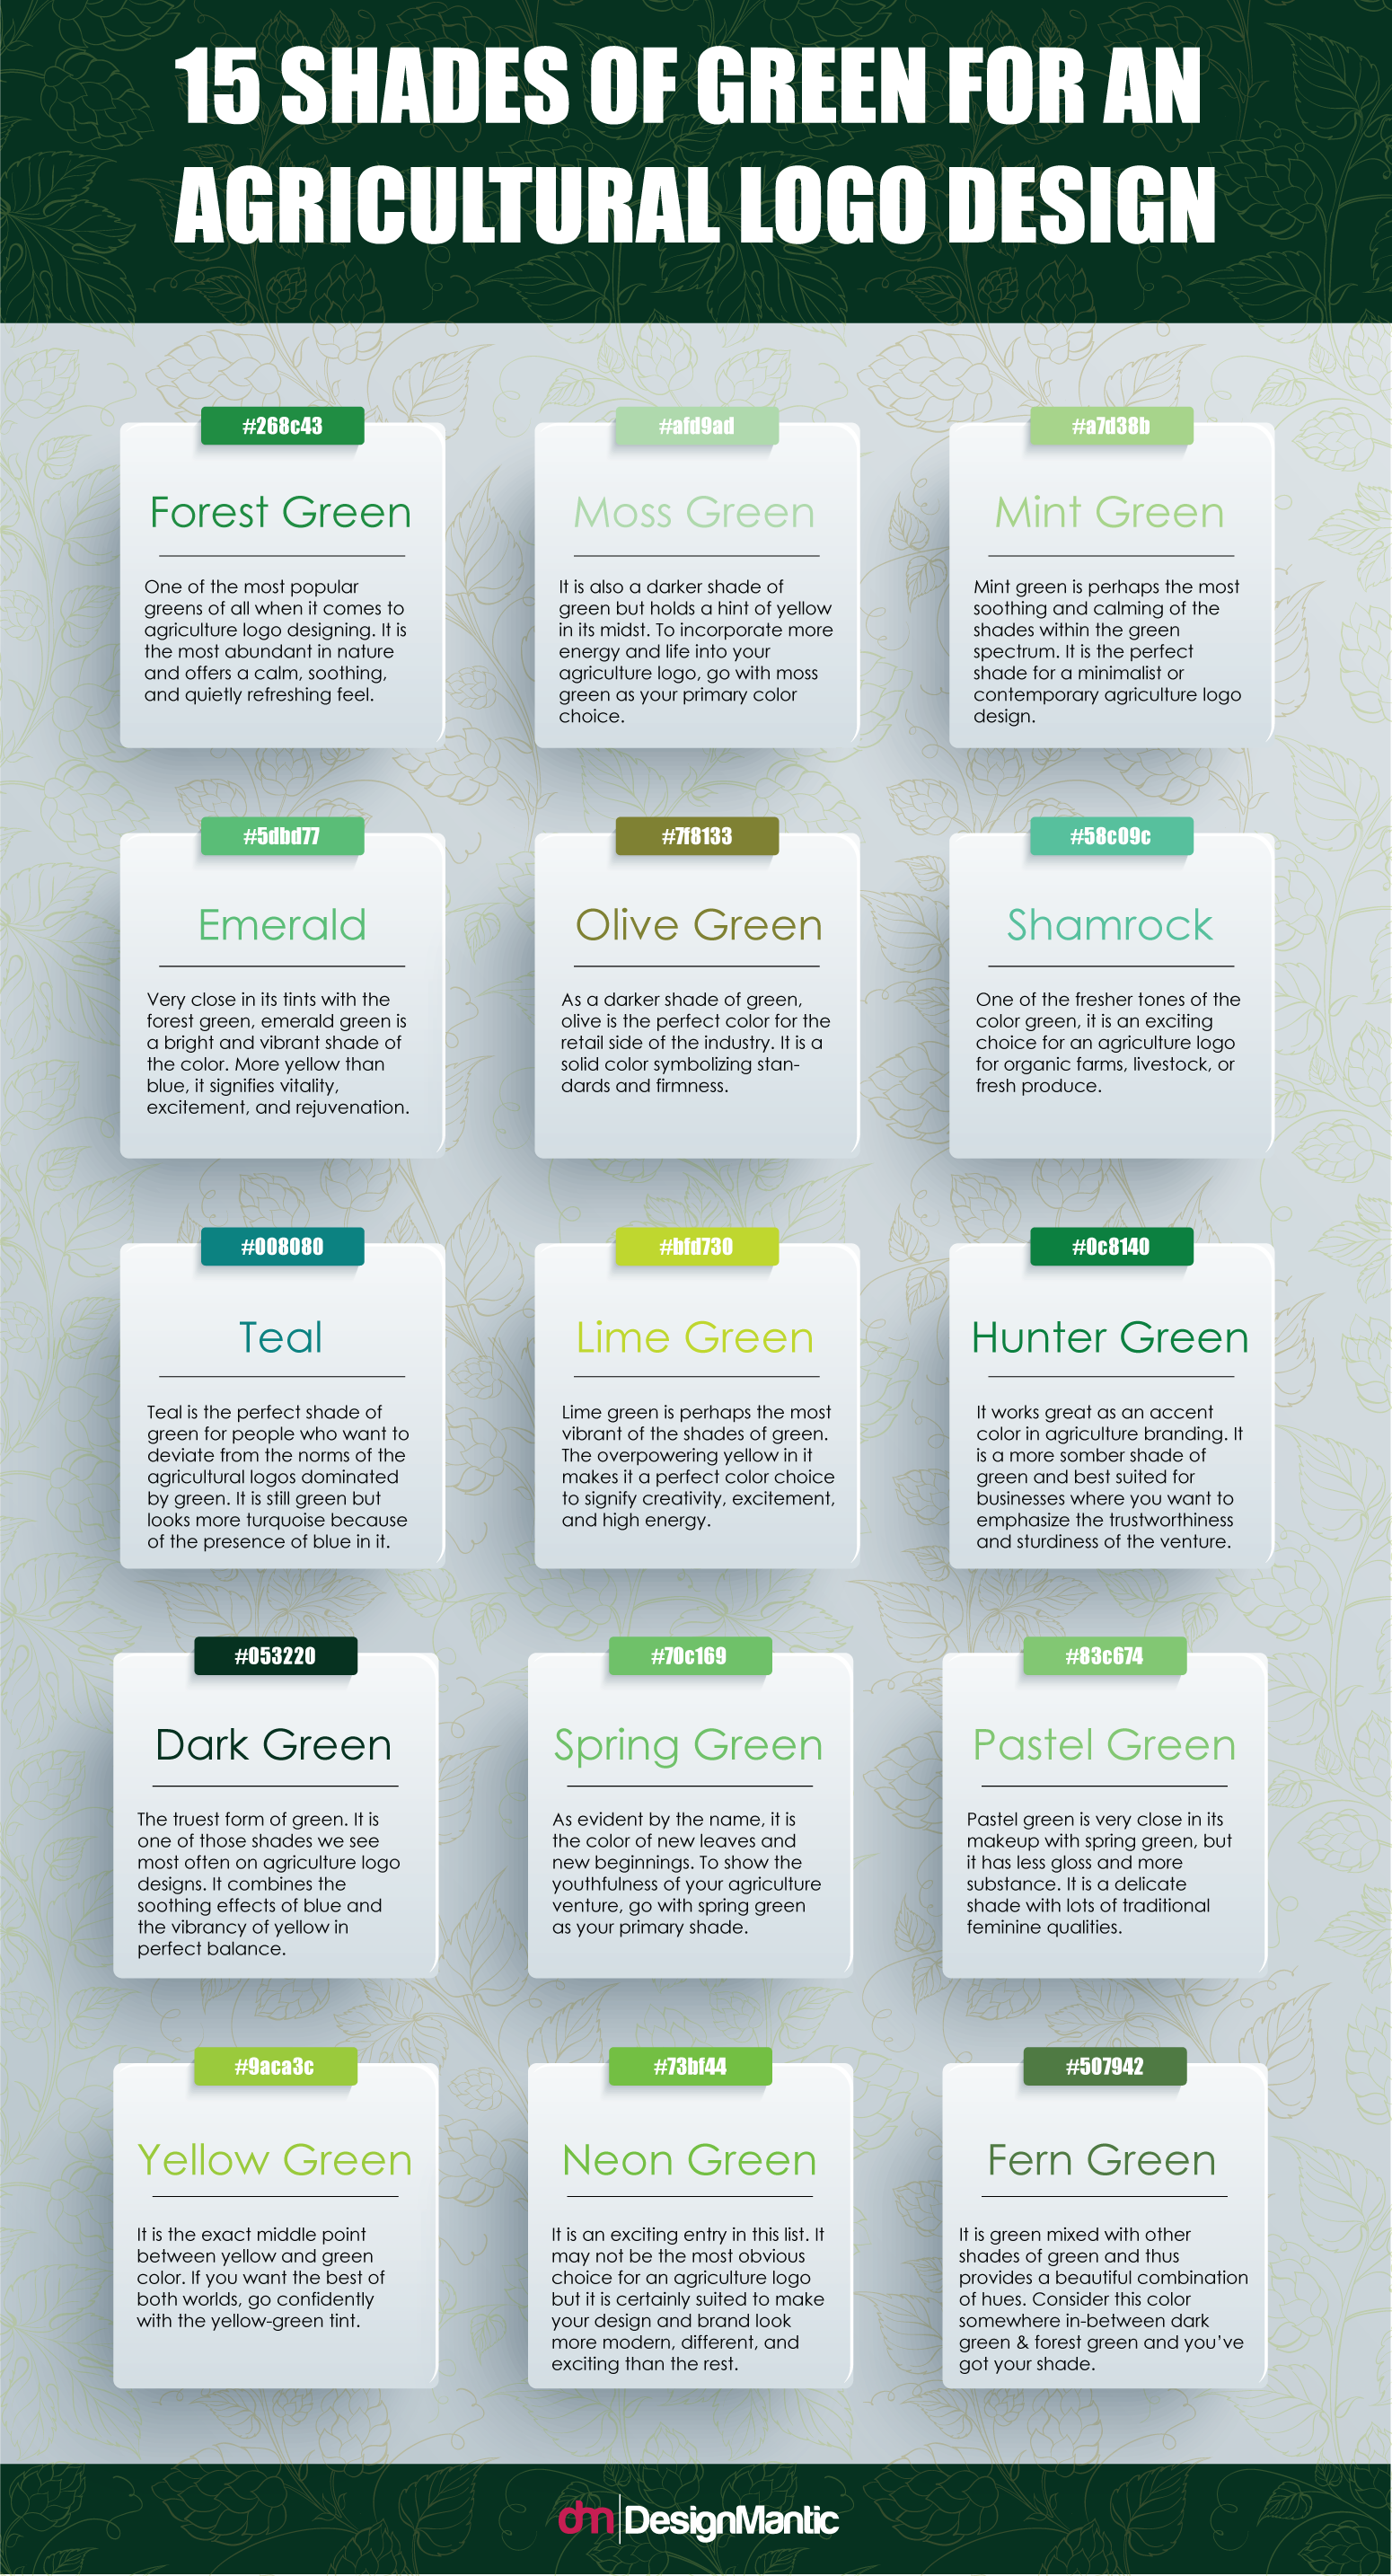 15 Shades Of Green For Agriculture Logo Designmantic The Design Shop